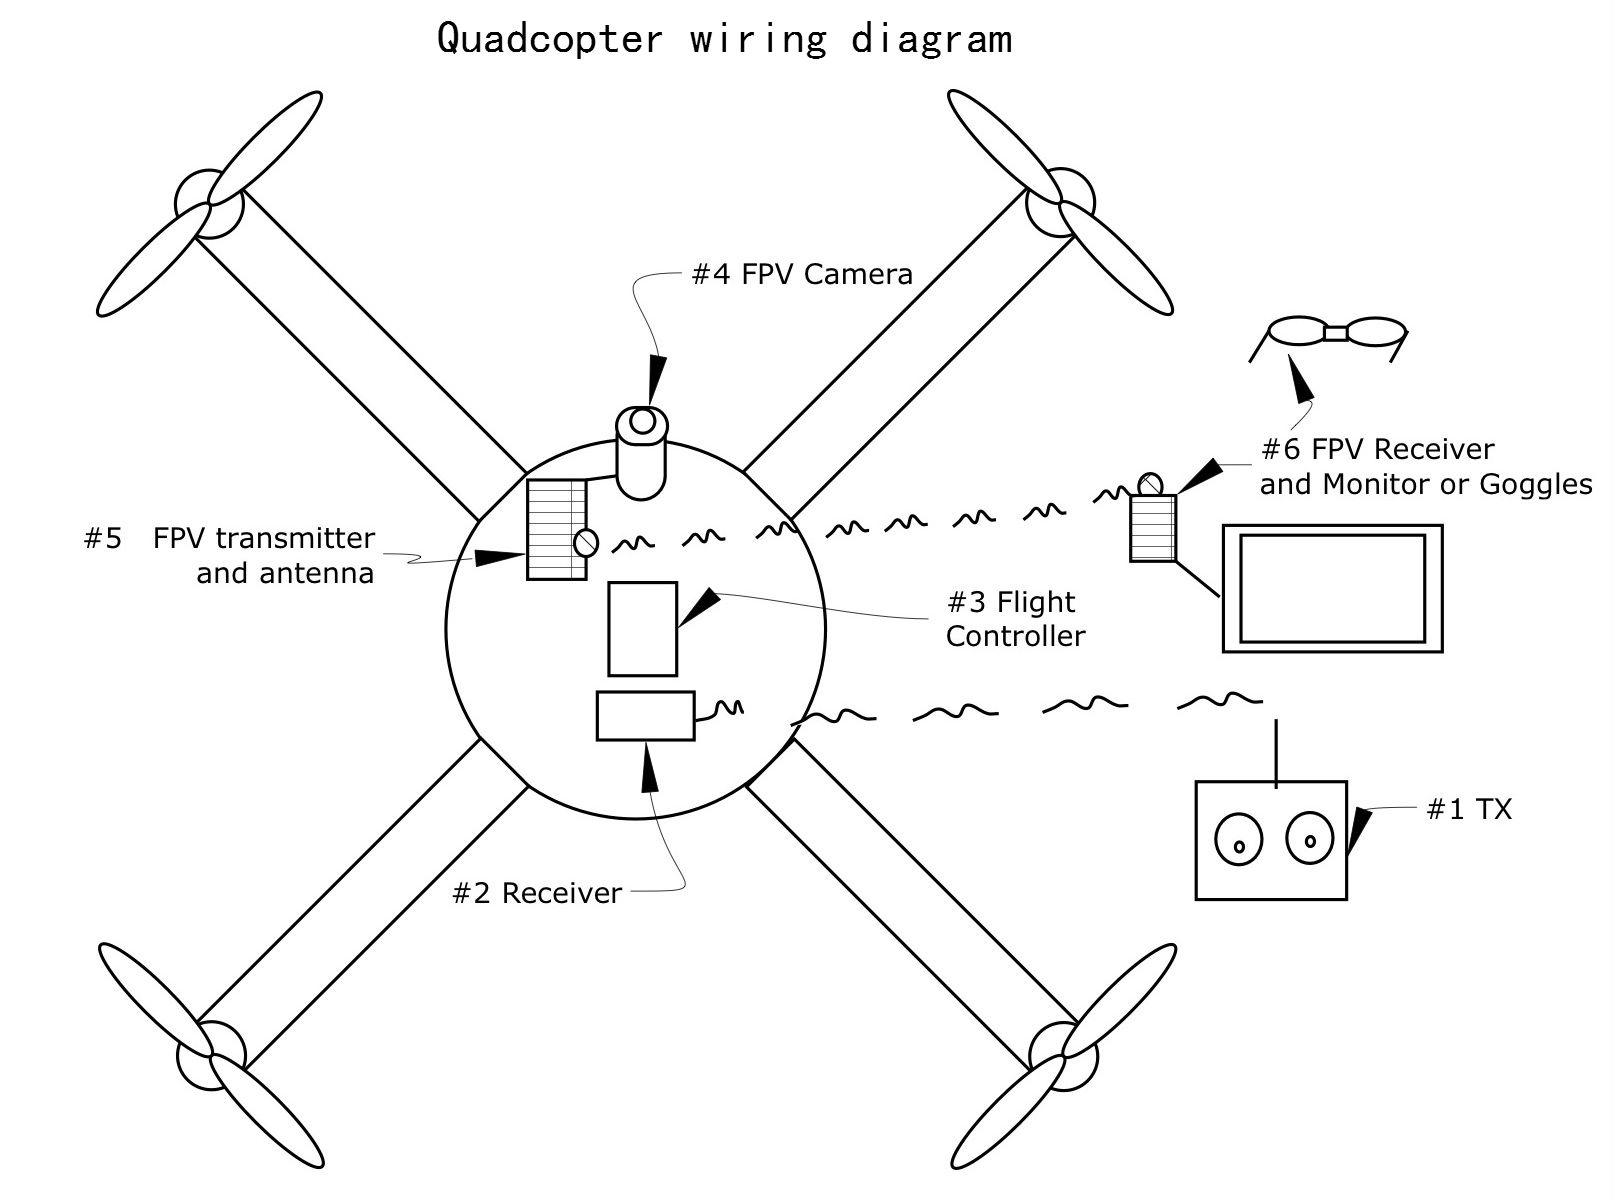 wiring quadcopter